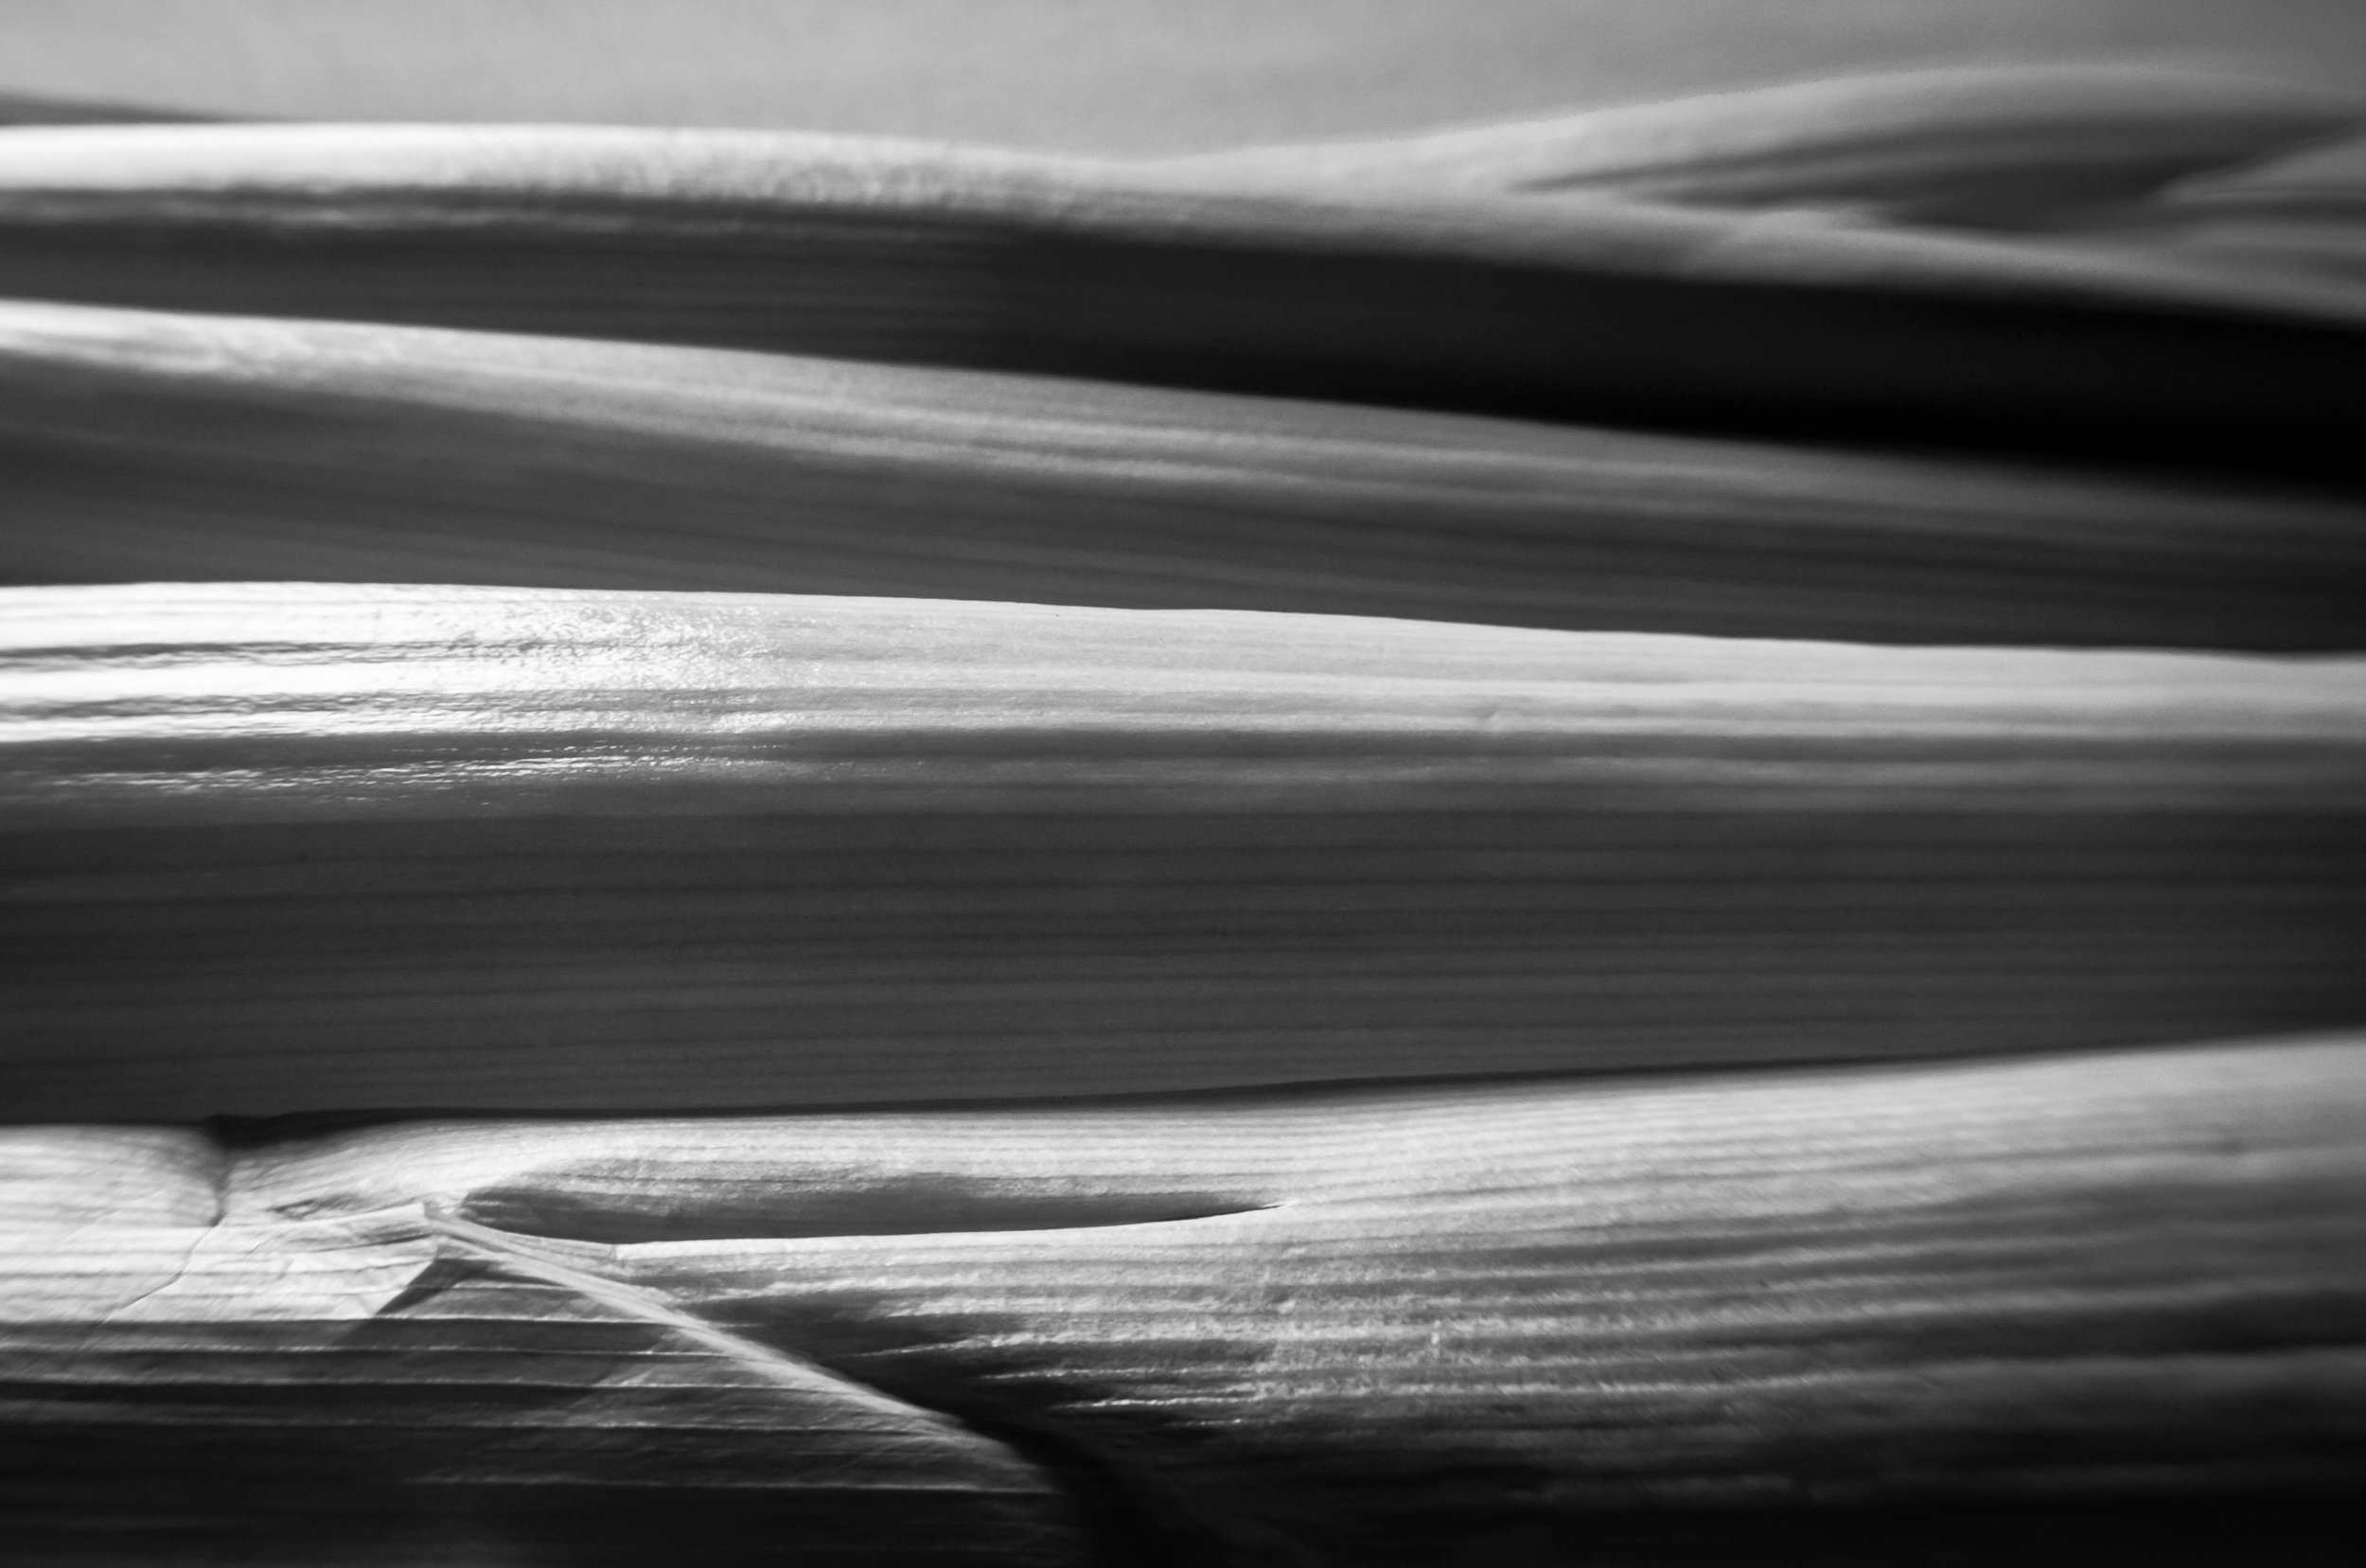 Constructed landscape #5  Deconstructed crumpled Leek and a Lensbaby.